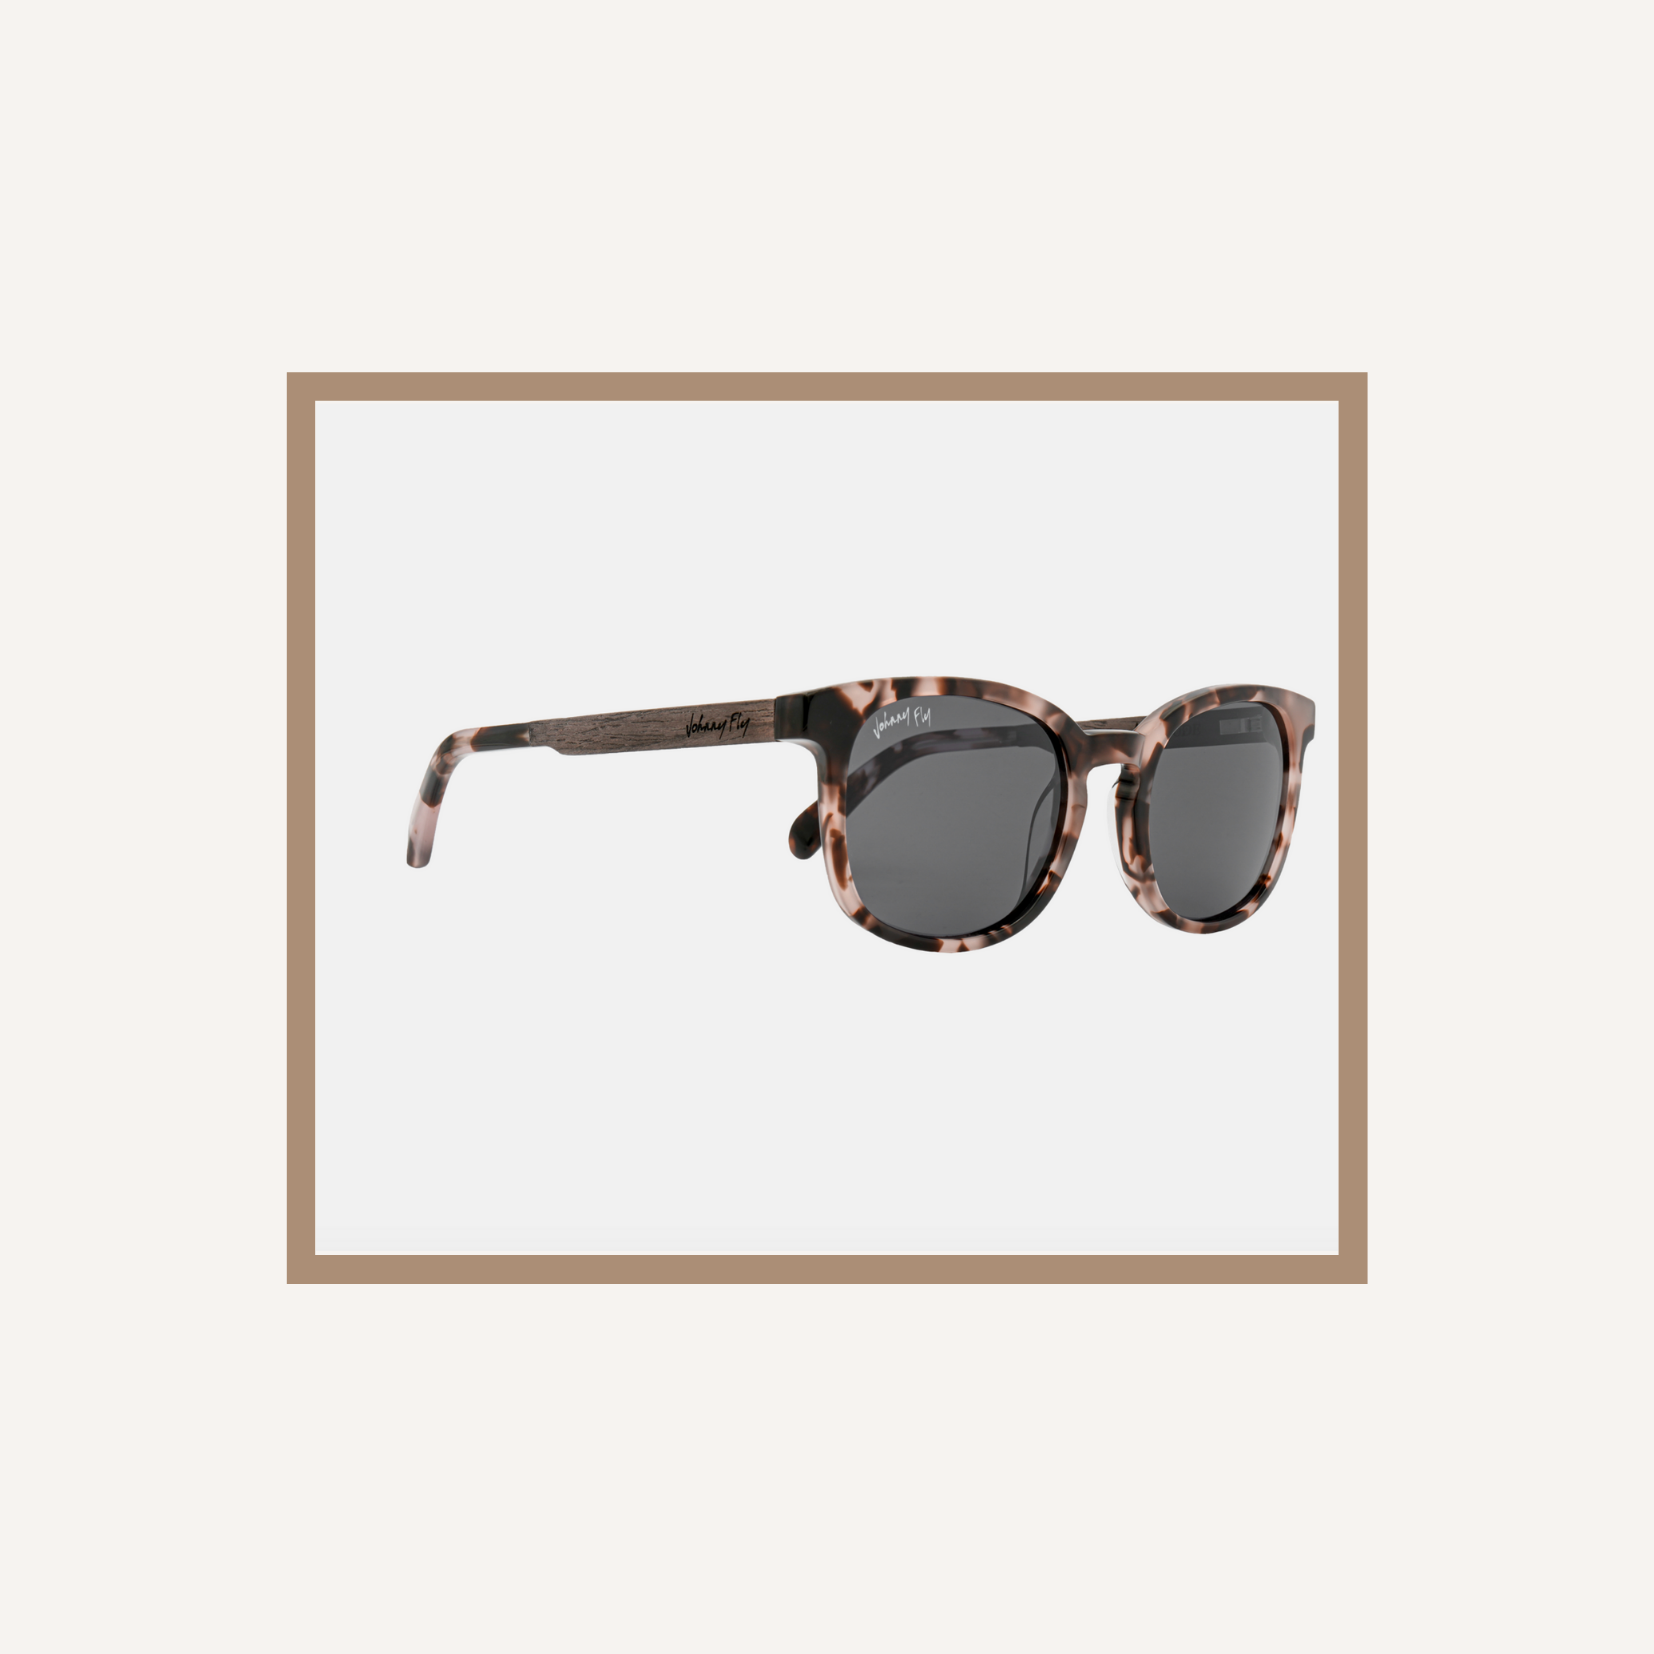 Johnny Fly Sunglasses, Wooden Sunglasses | Louella Reese